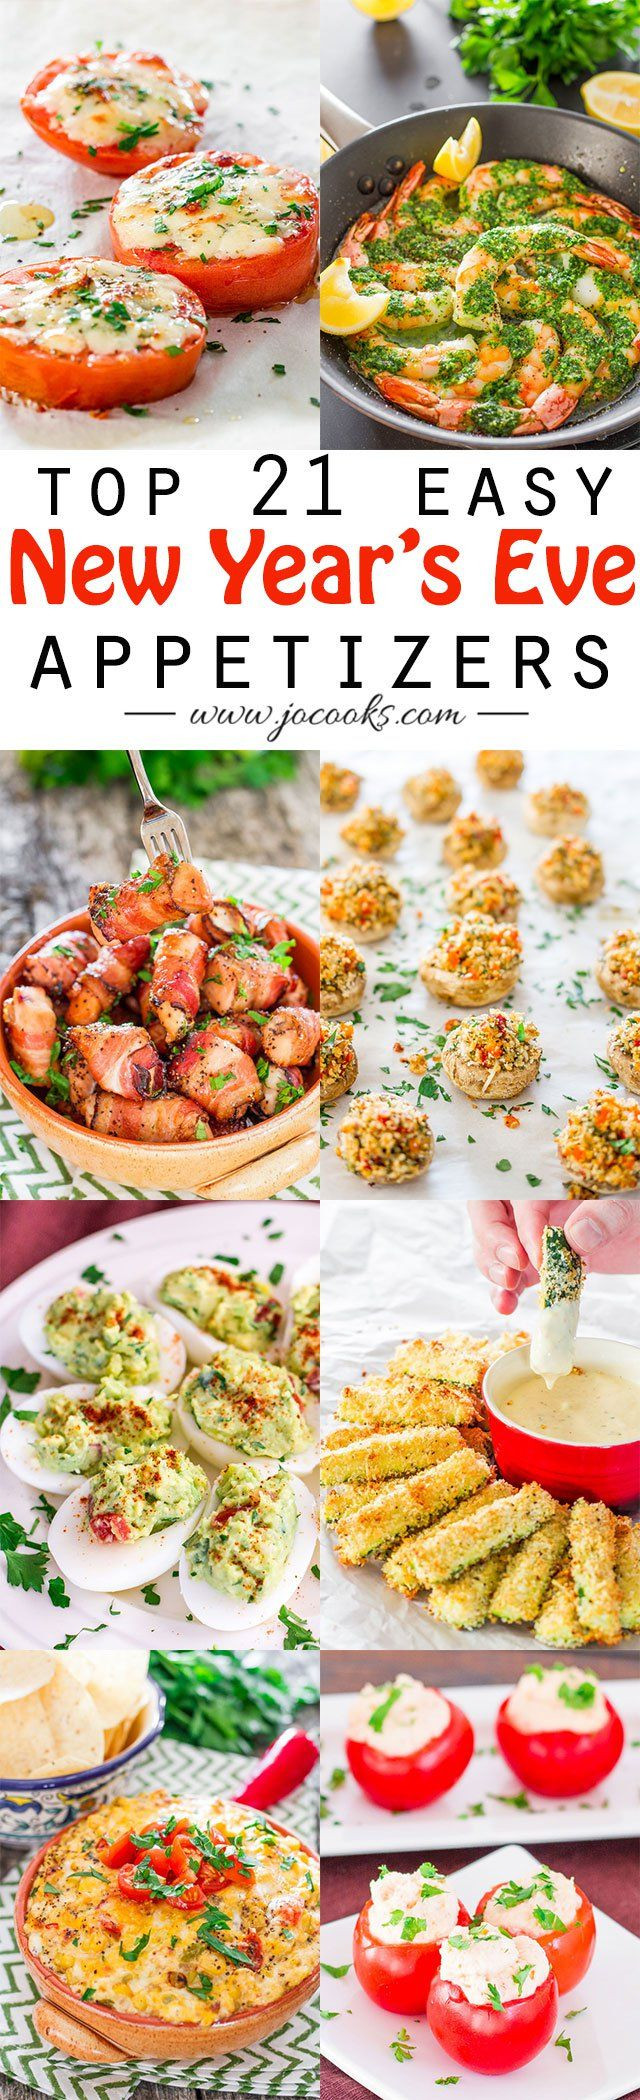 Appetizers For Christmas Eve Party  25 best ideas about New year s eve appetizers on